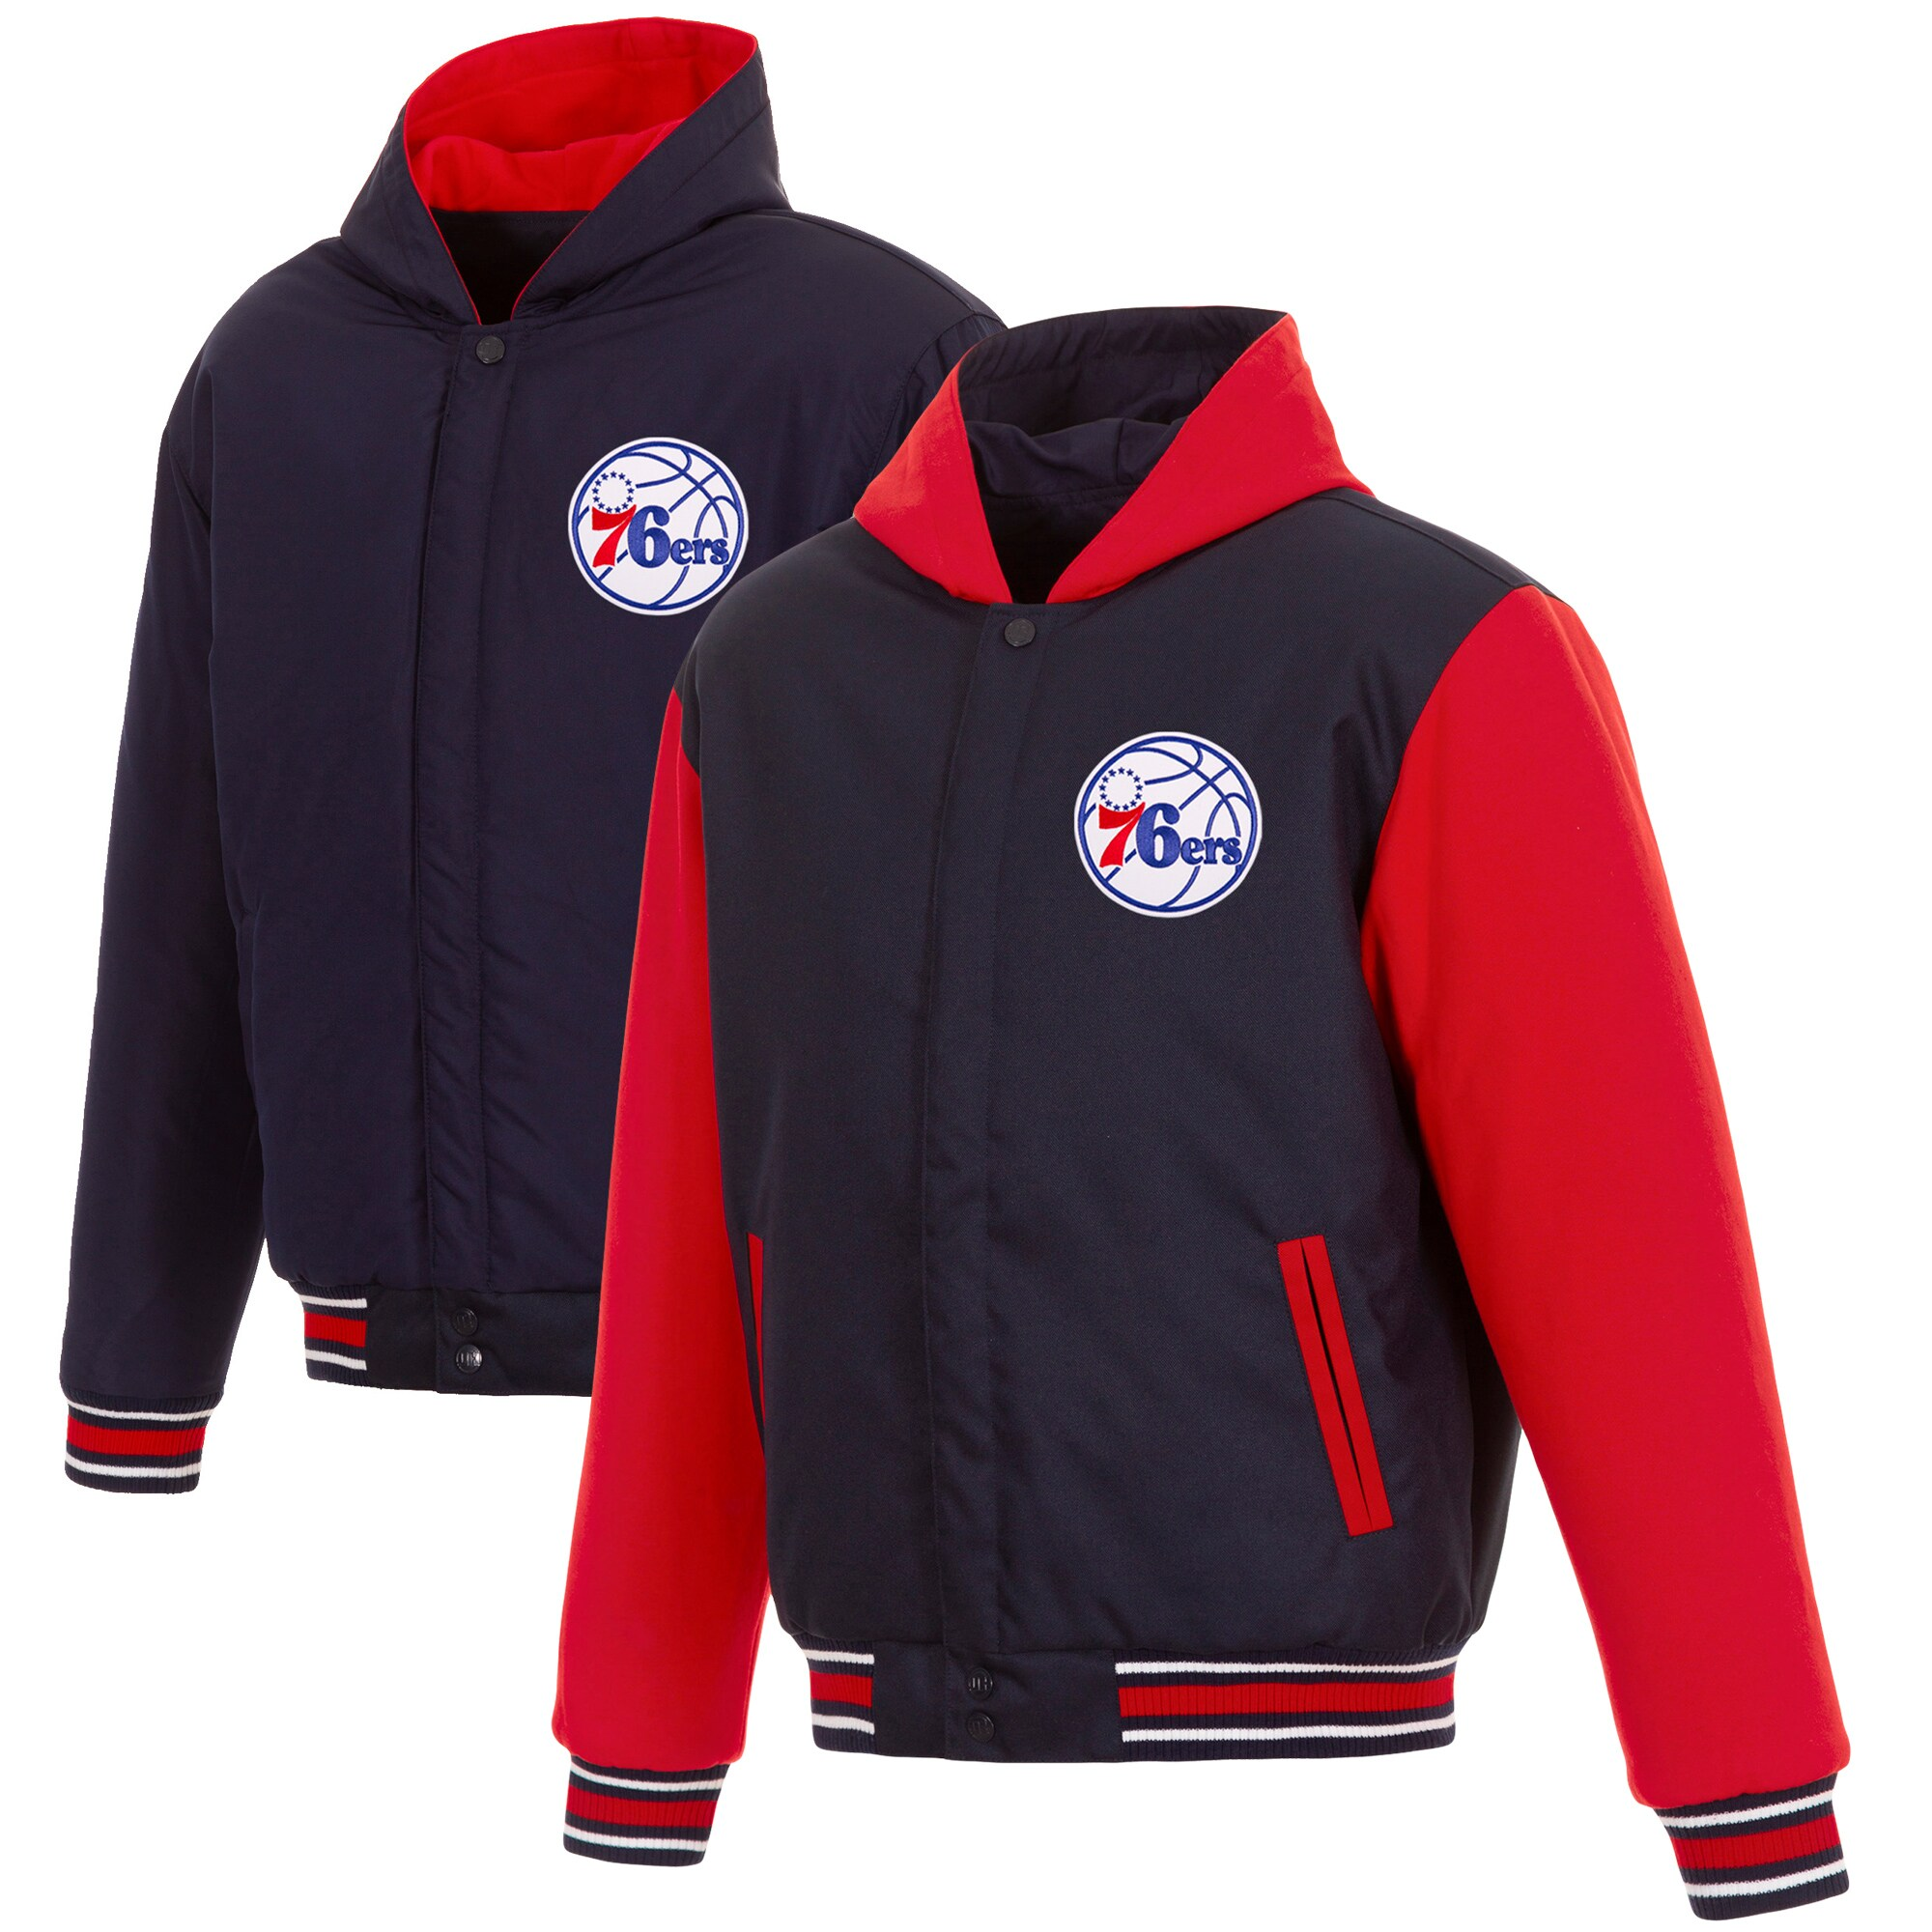 Philadelphia 76ers JH Design Reversible Poly-Twill Hooded Jacket with Fleece Sleeves - Navy/Red